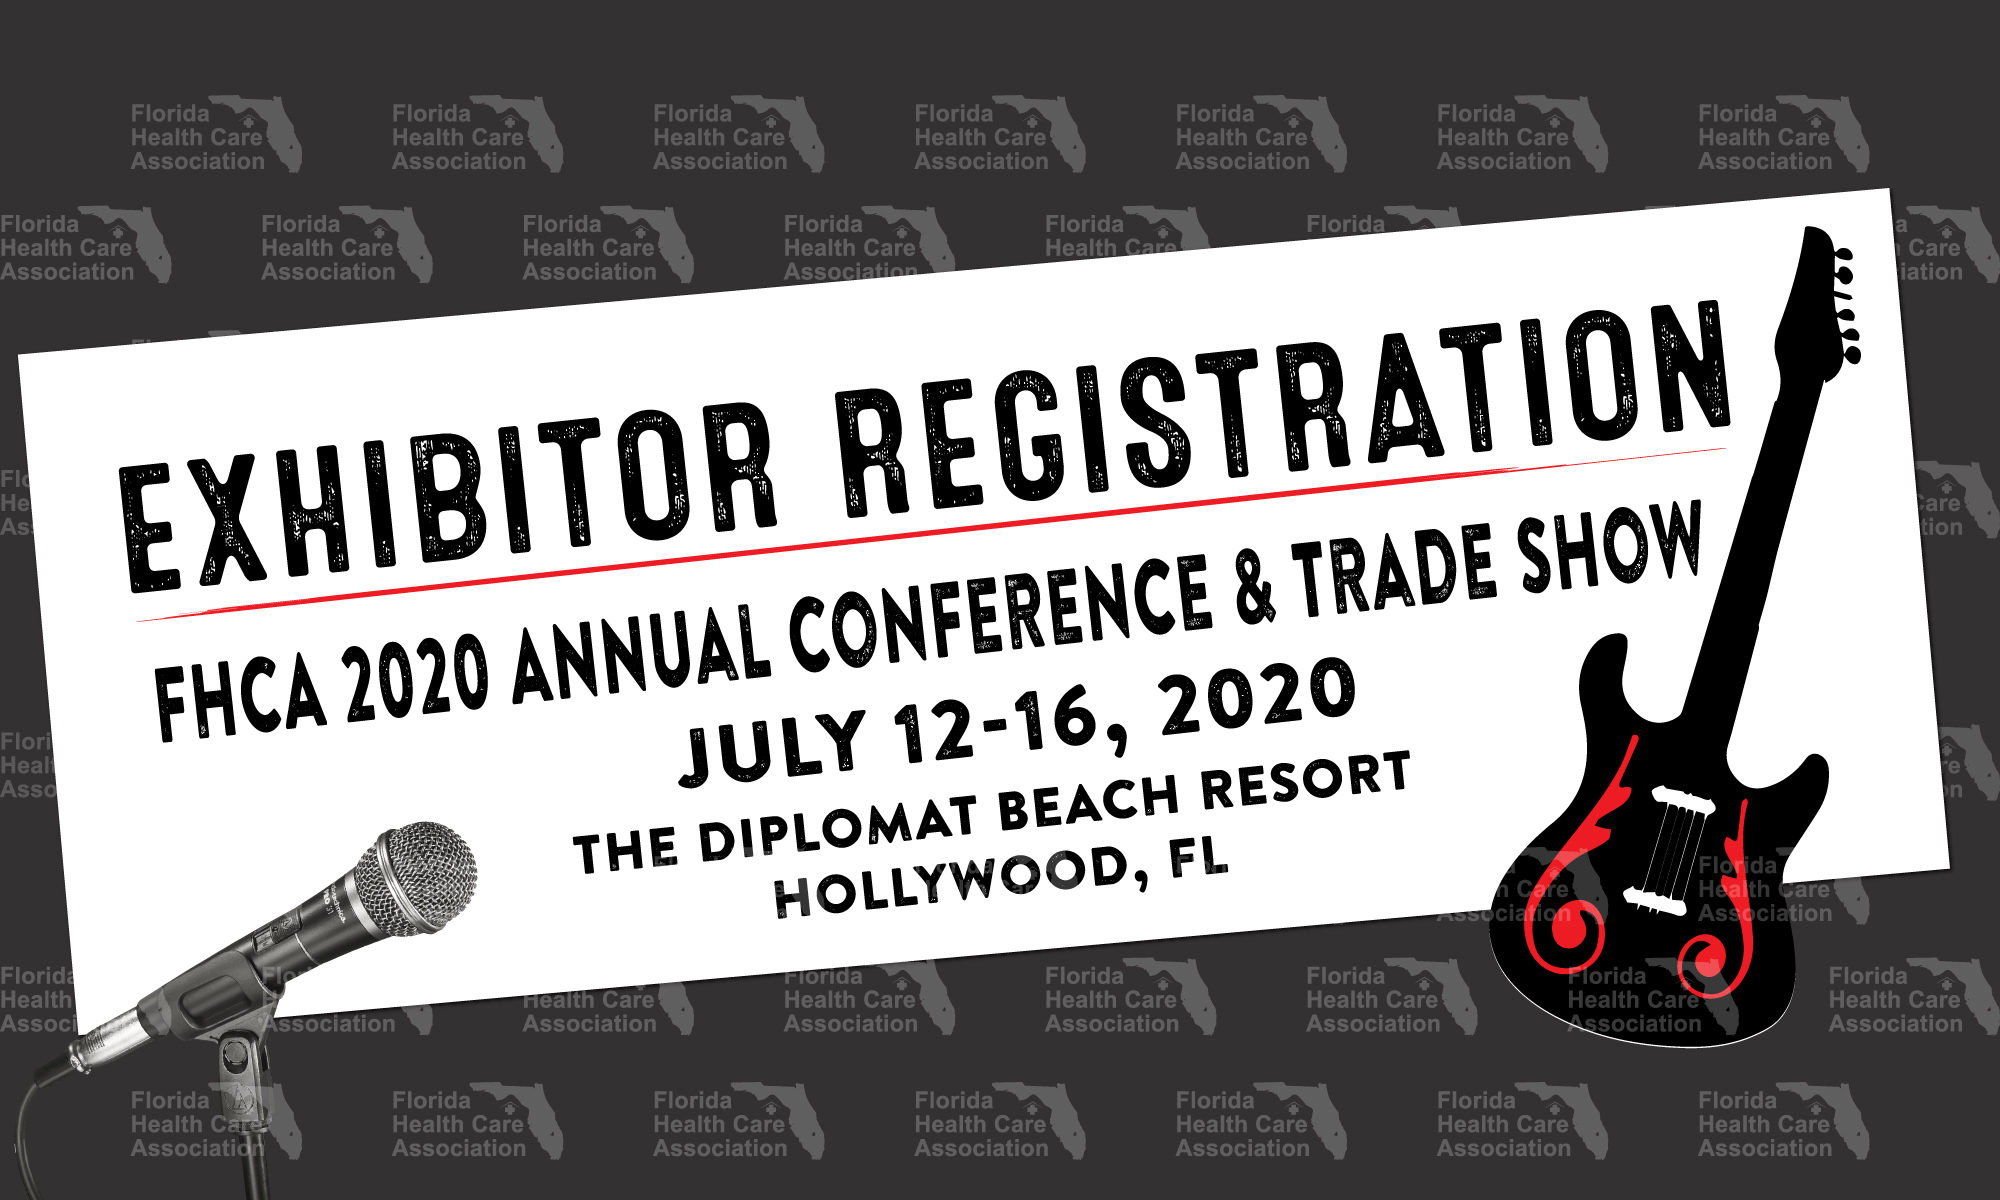 Annual Conference & Tradeshow registration